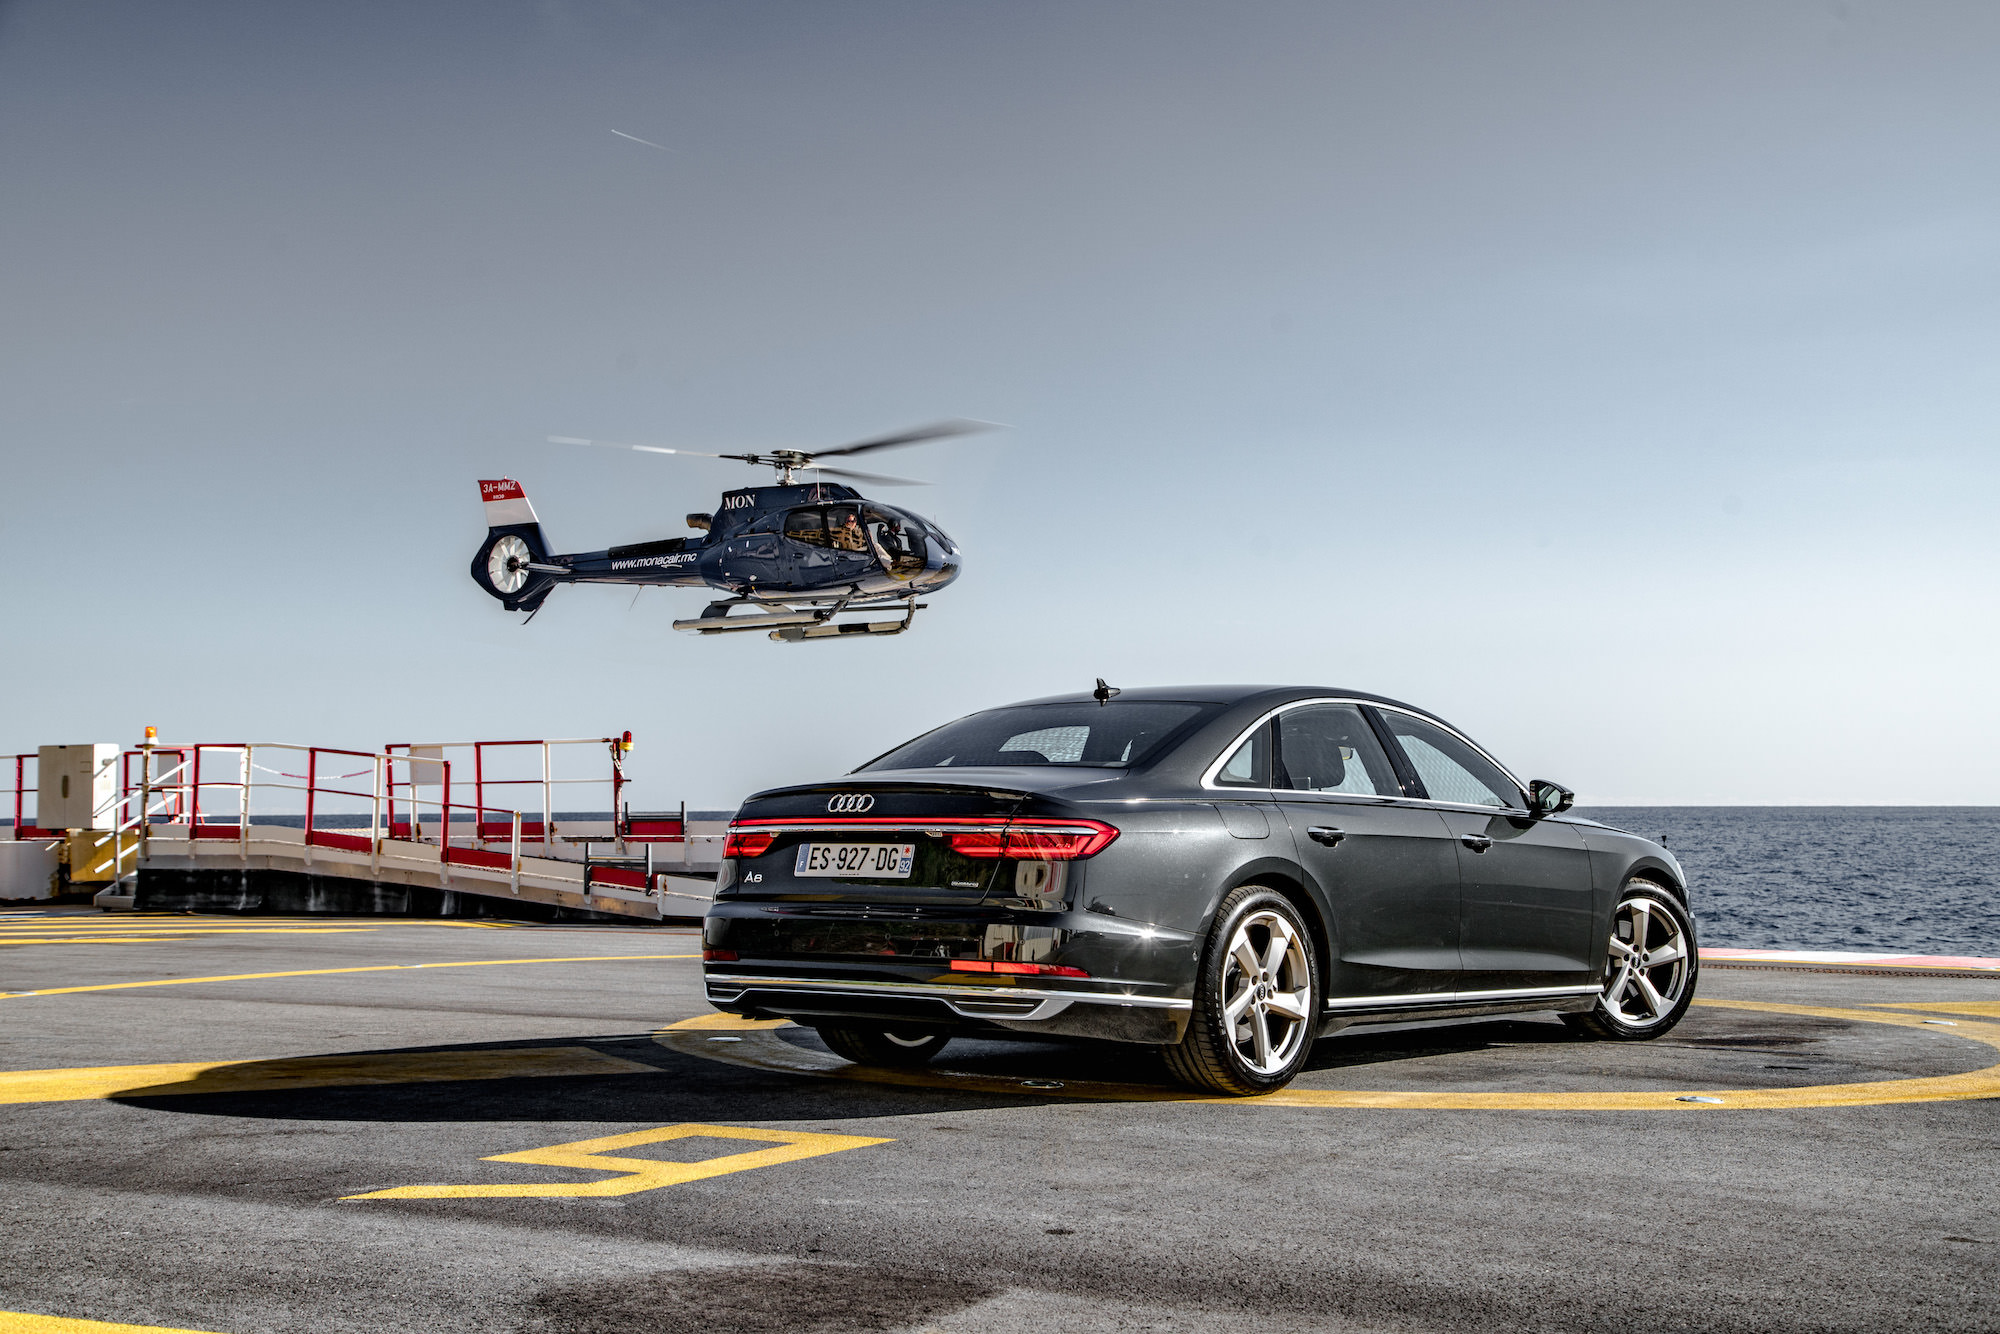 Audi A8 helicopter